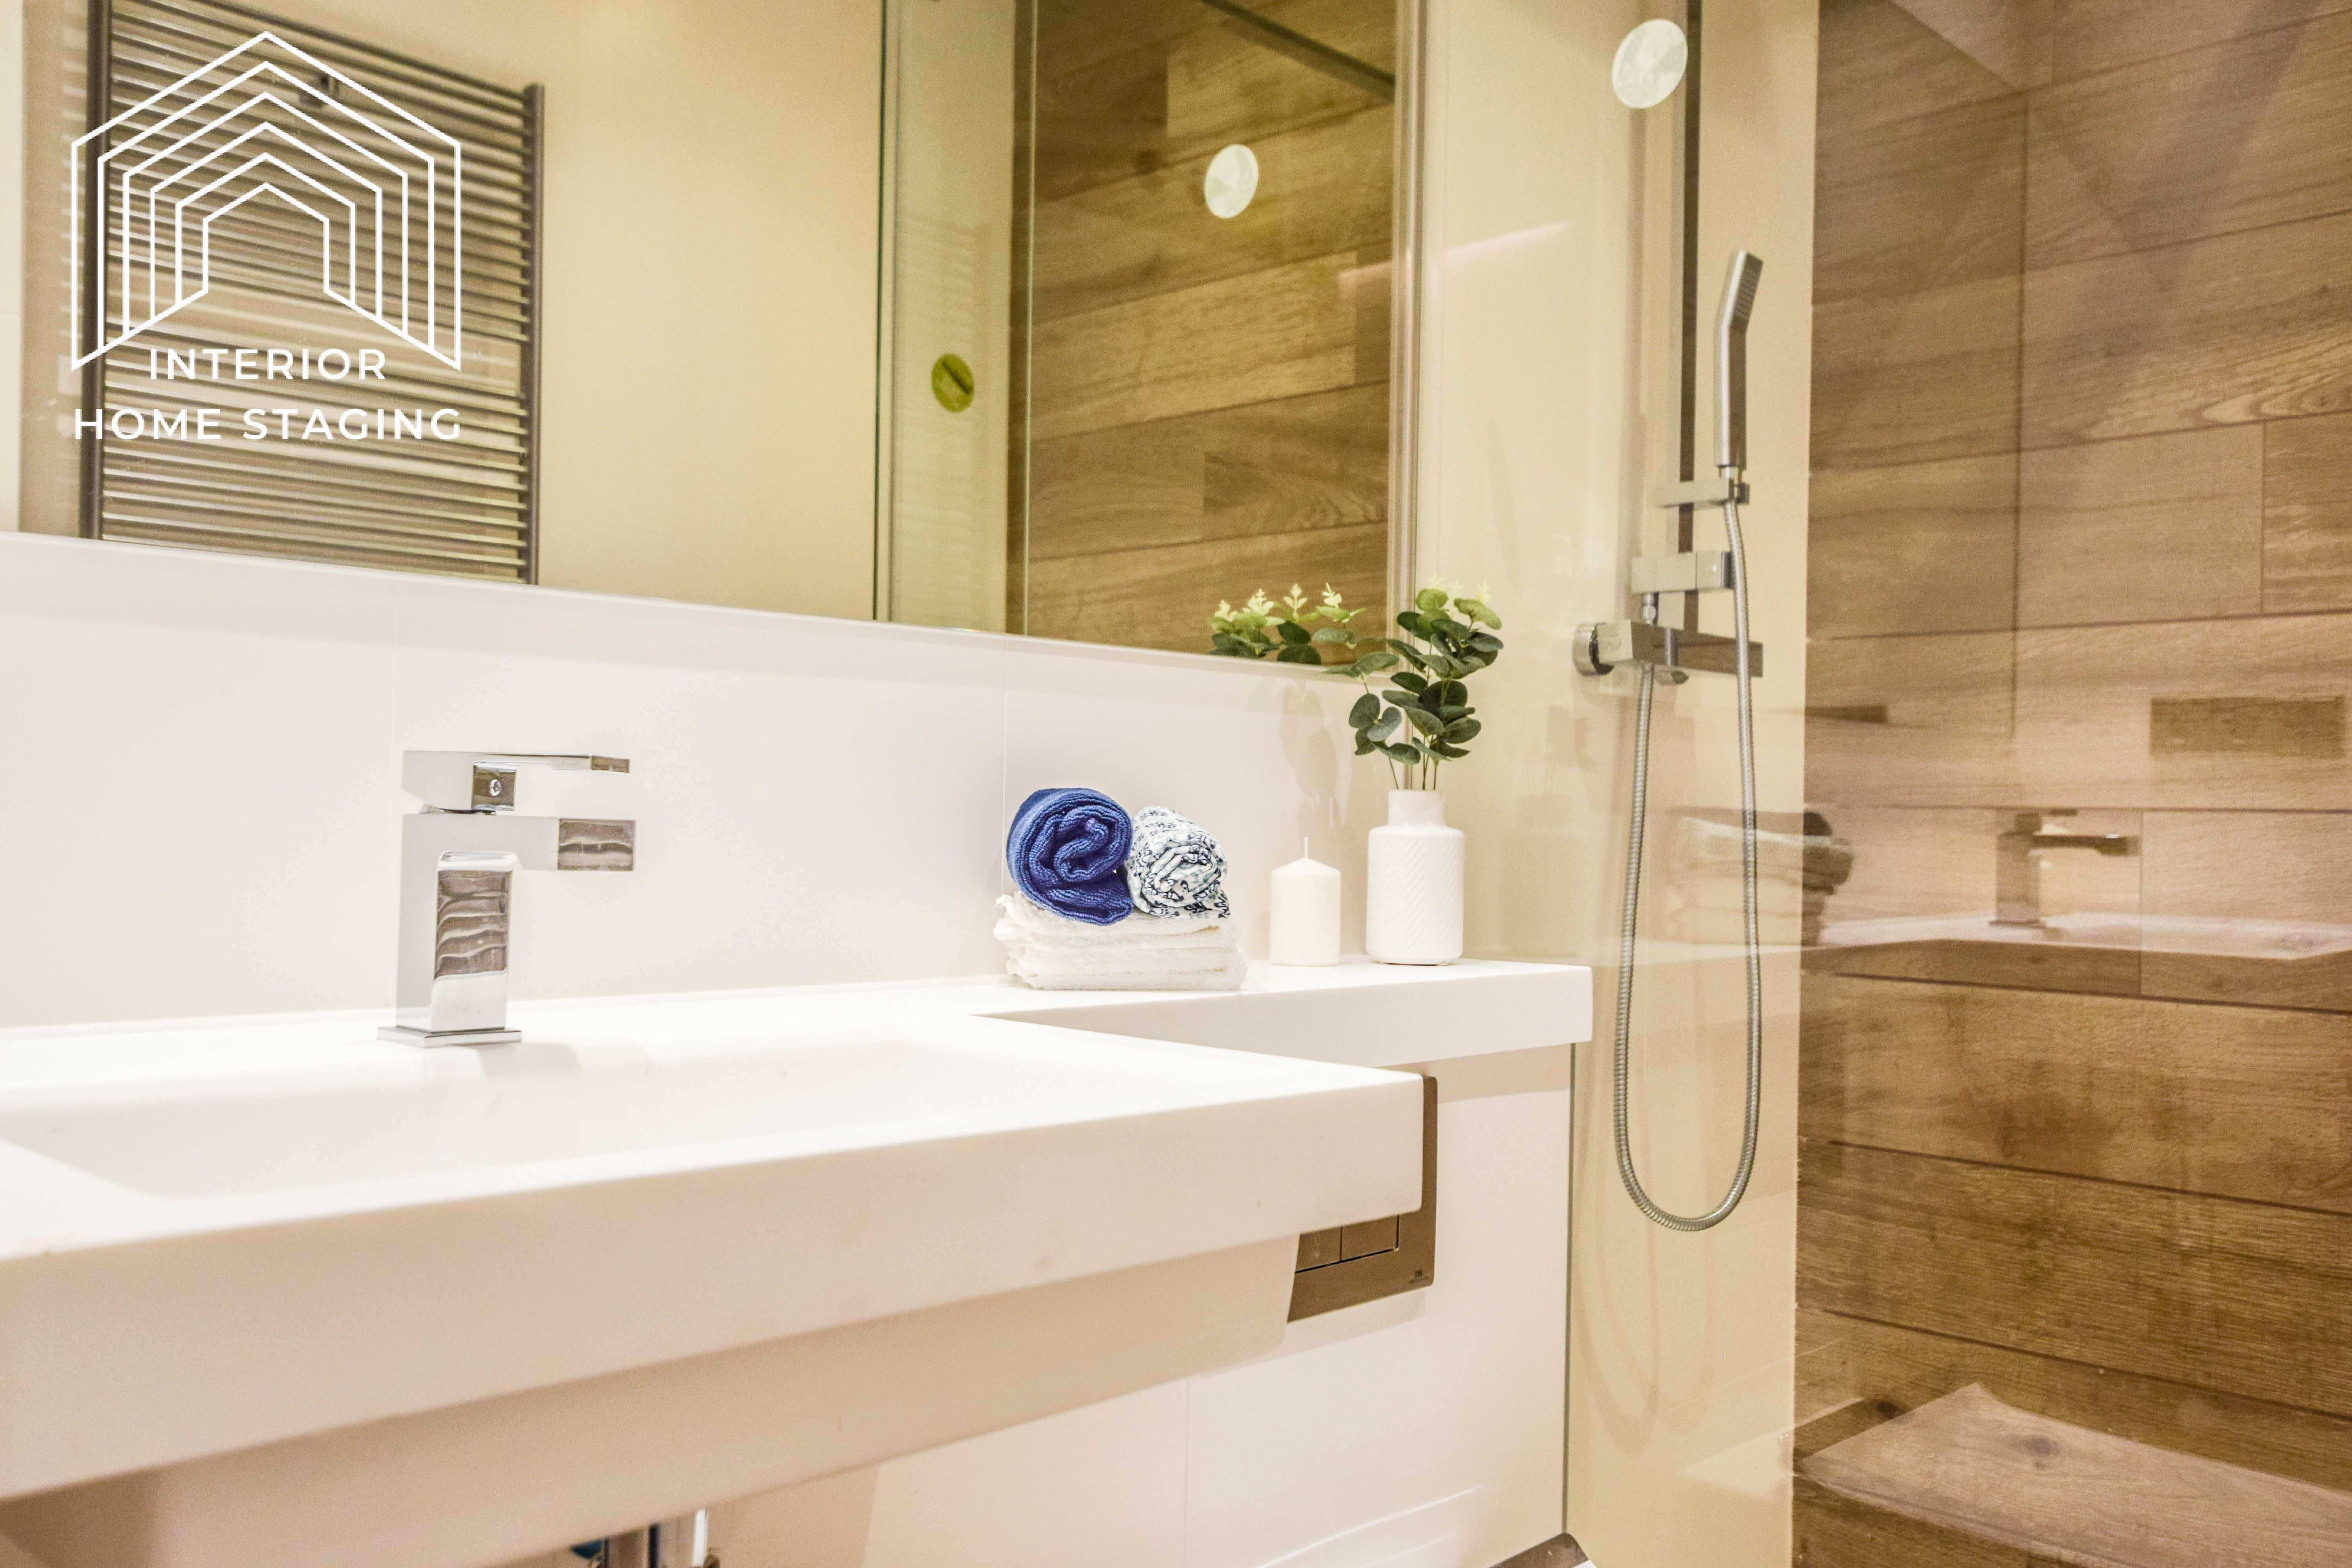 Interior Home Staging baño